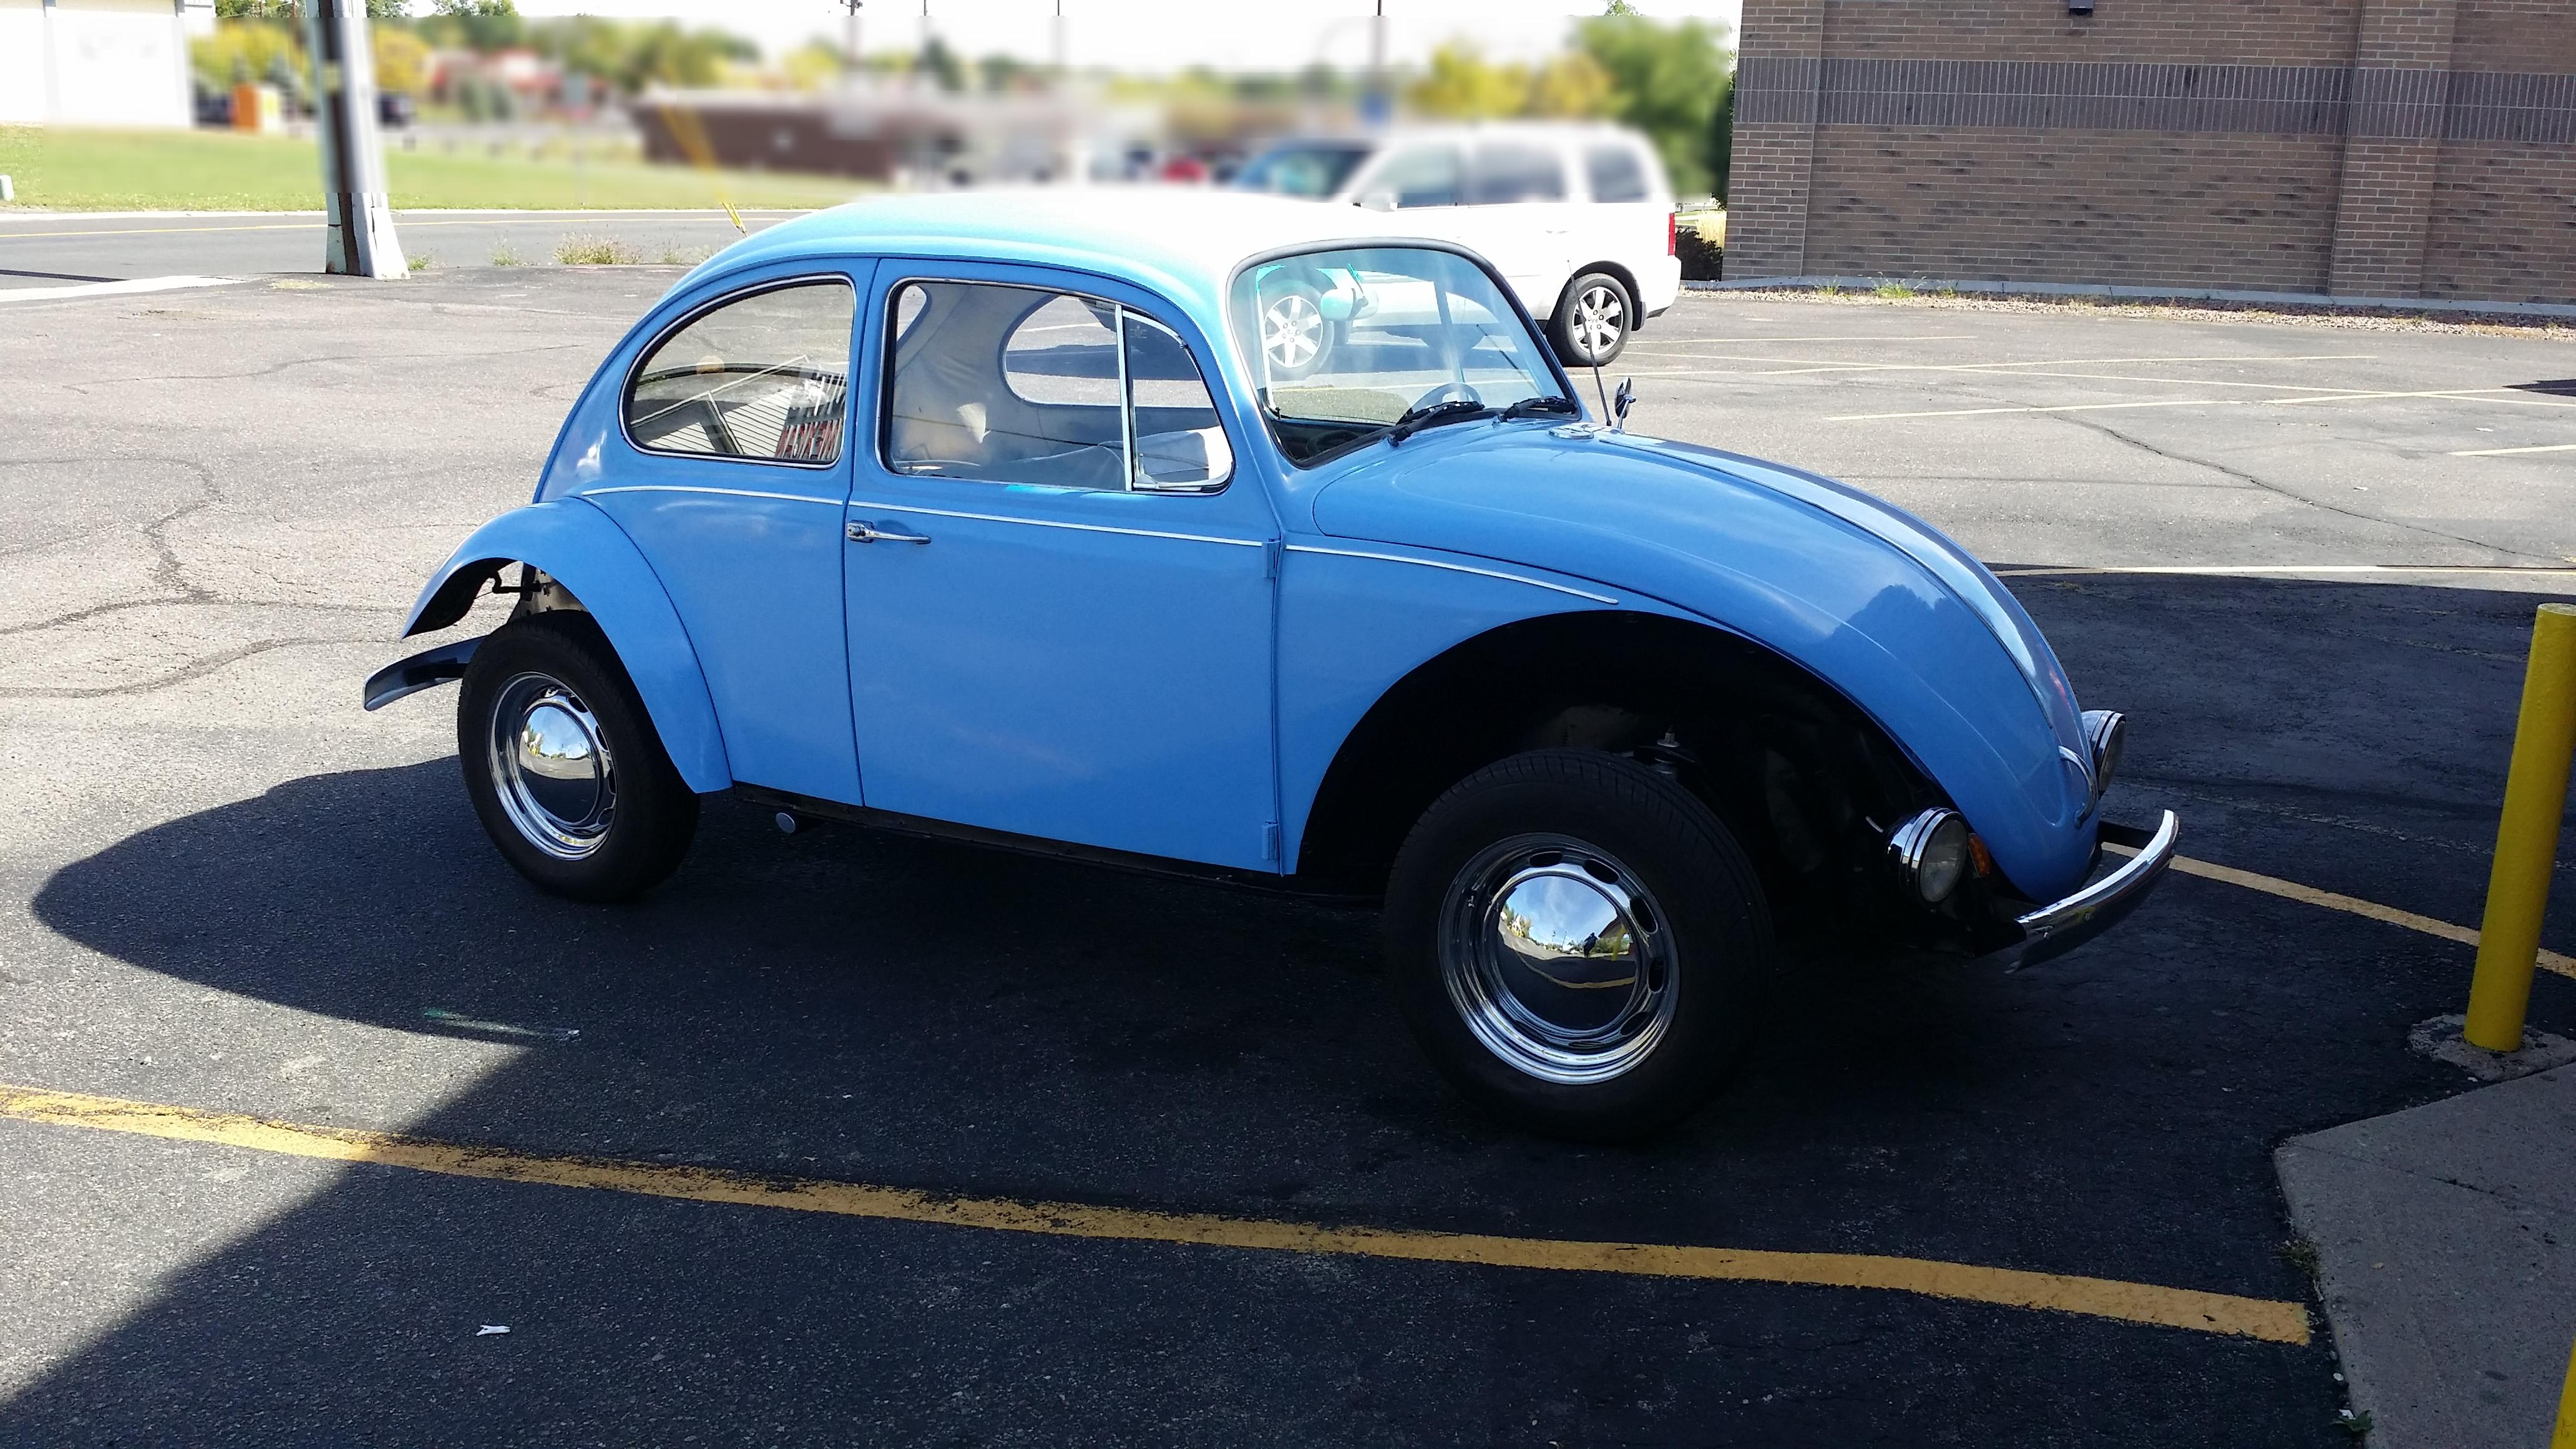 Colorado Public Radio Car Donation: 1976 Volkswagen Beetle